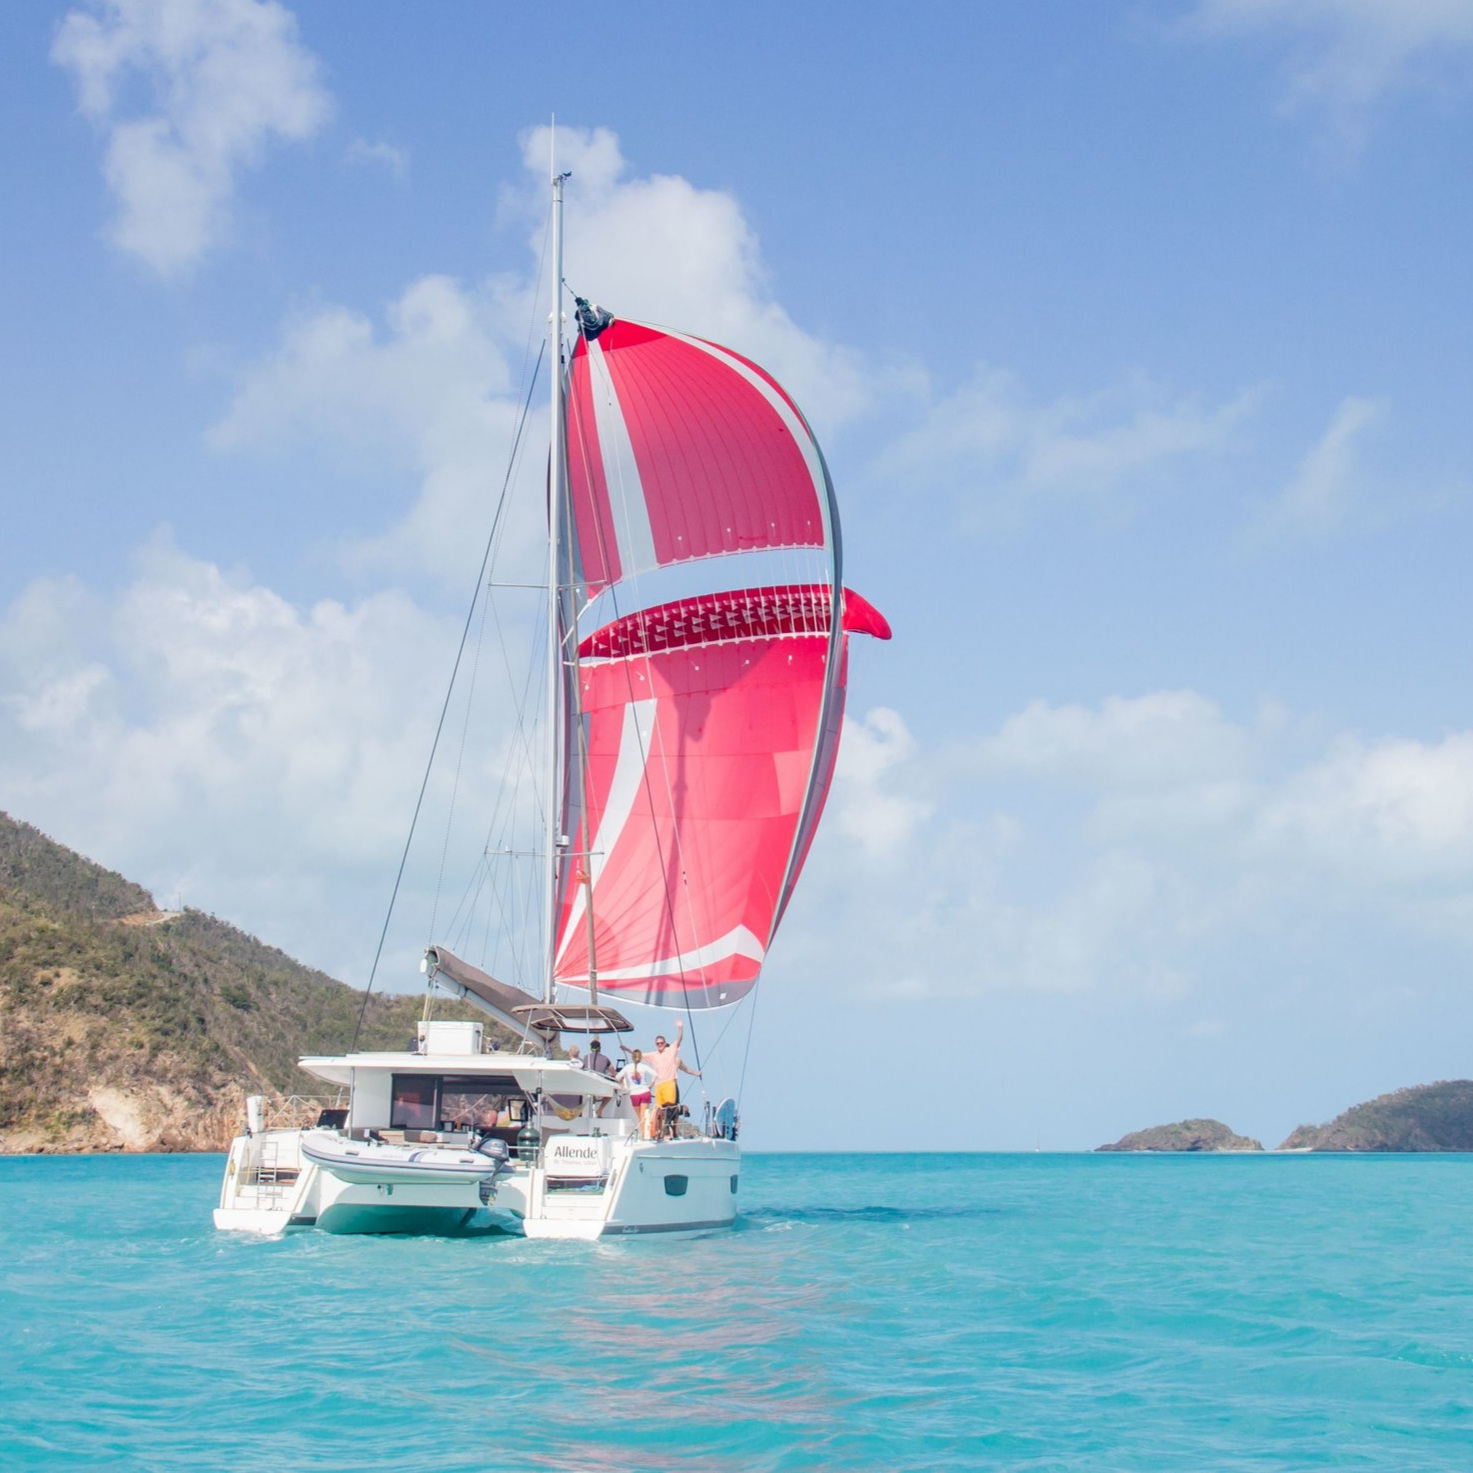 Photo credit: yacht shots bvi